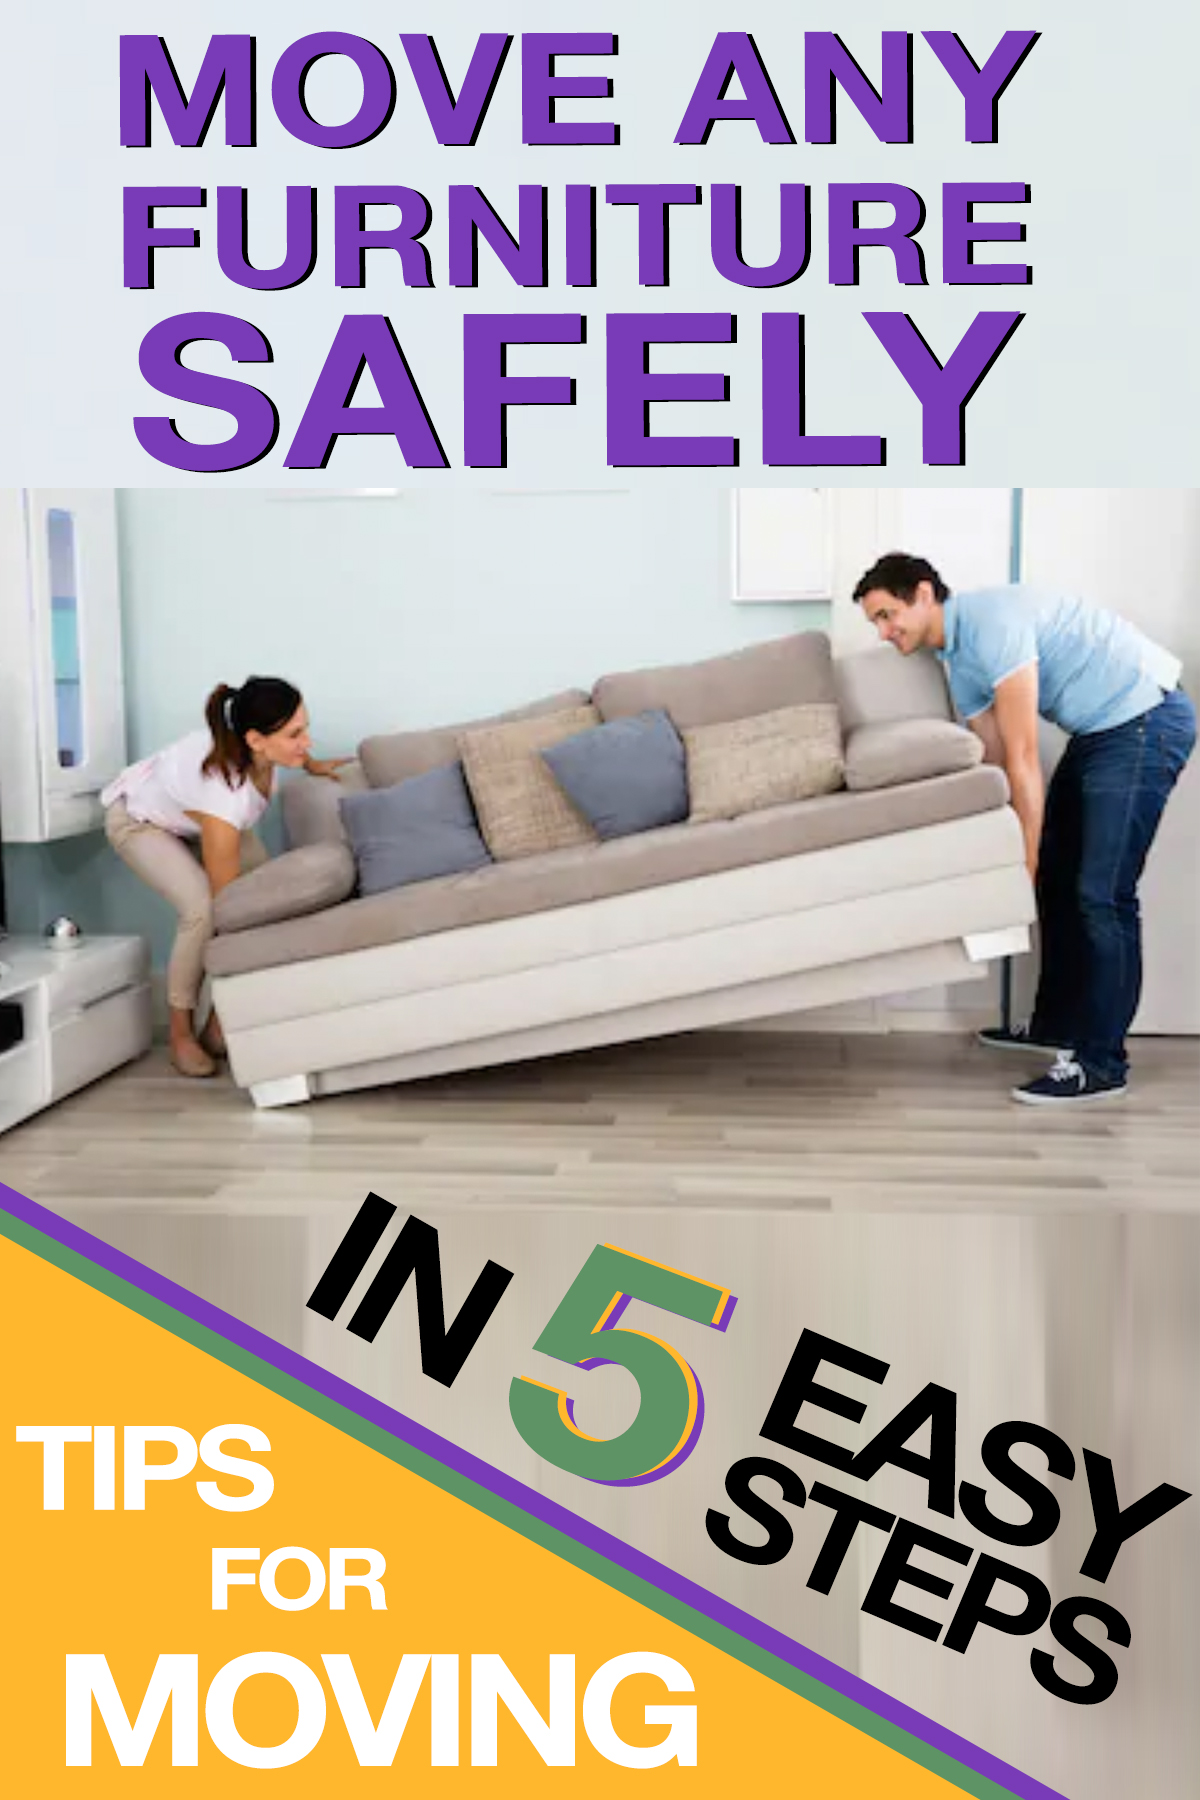 Move Any Furniture Safely in 5 Simple Steps.